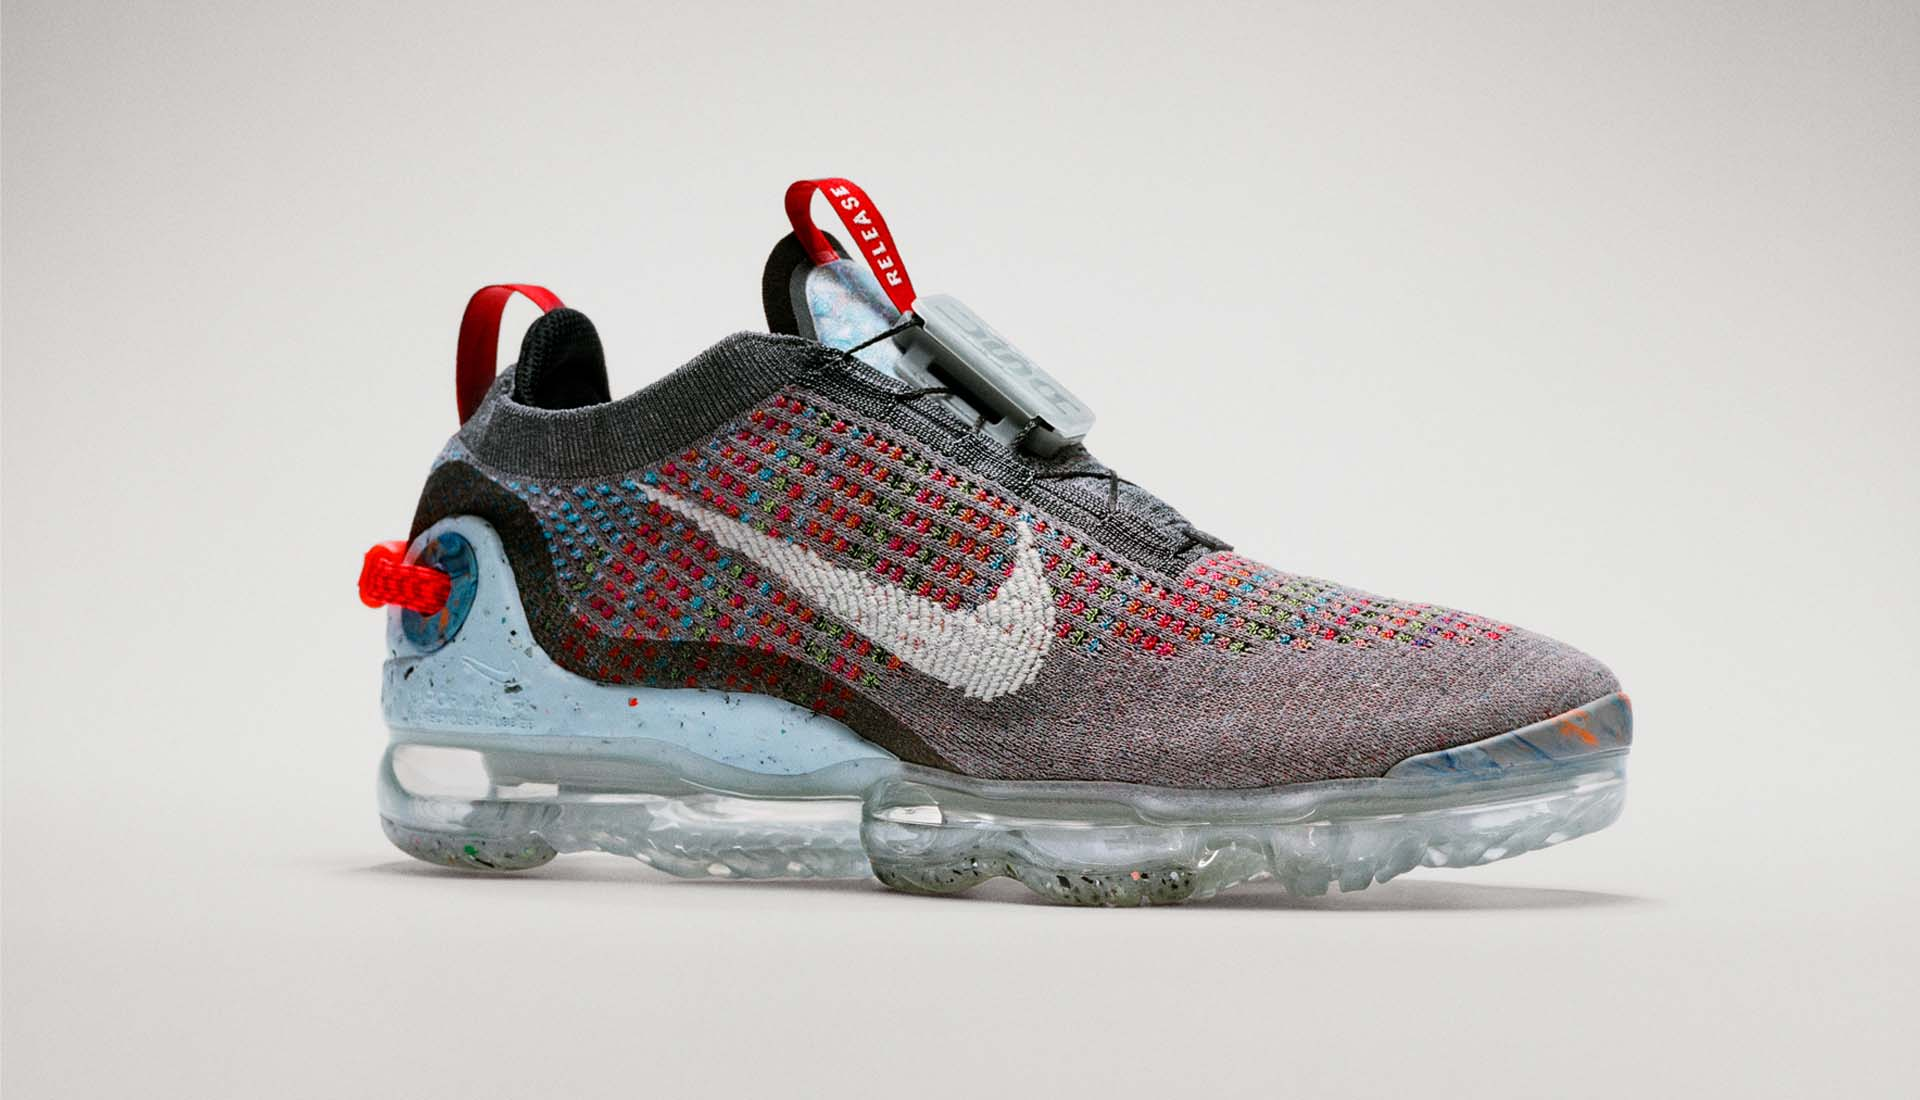 Nike Air VaporMax 2020 Surfaces in